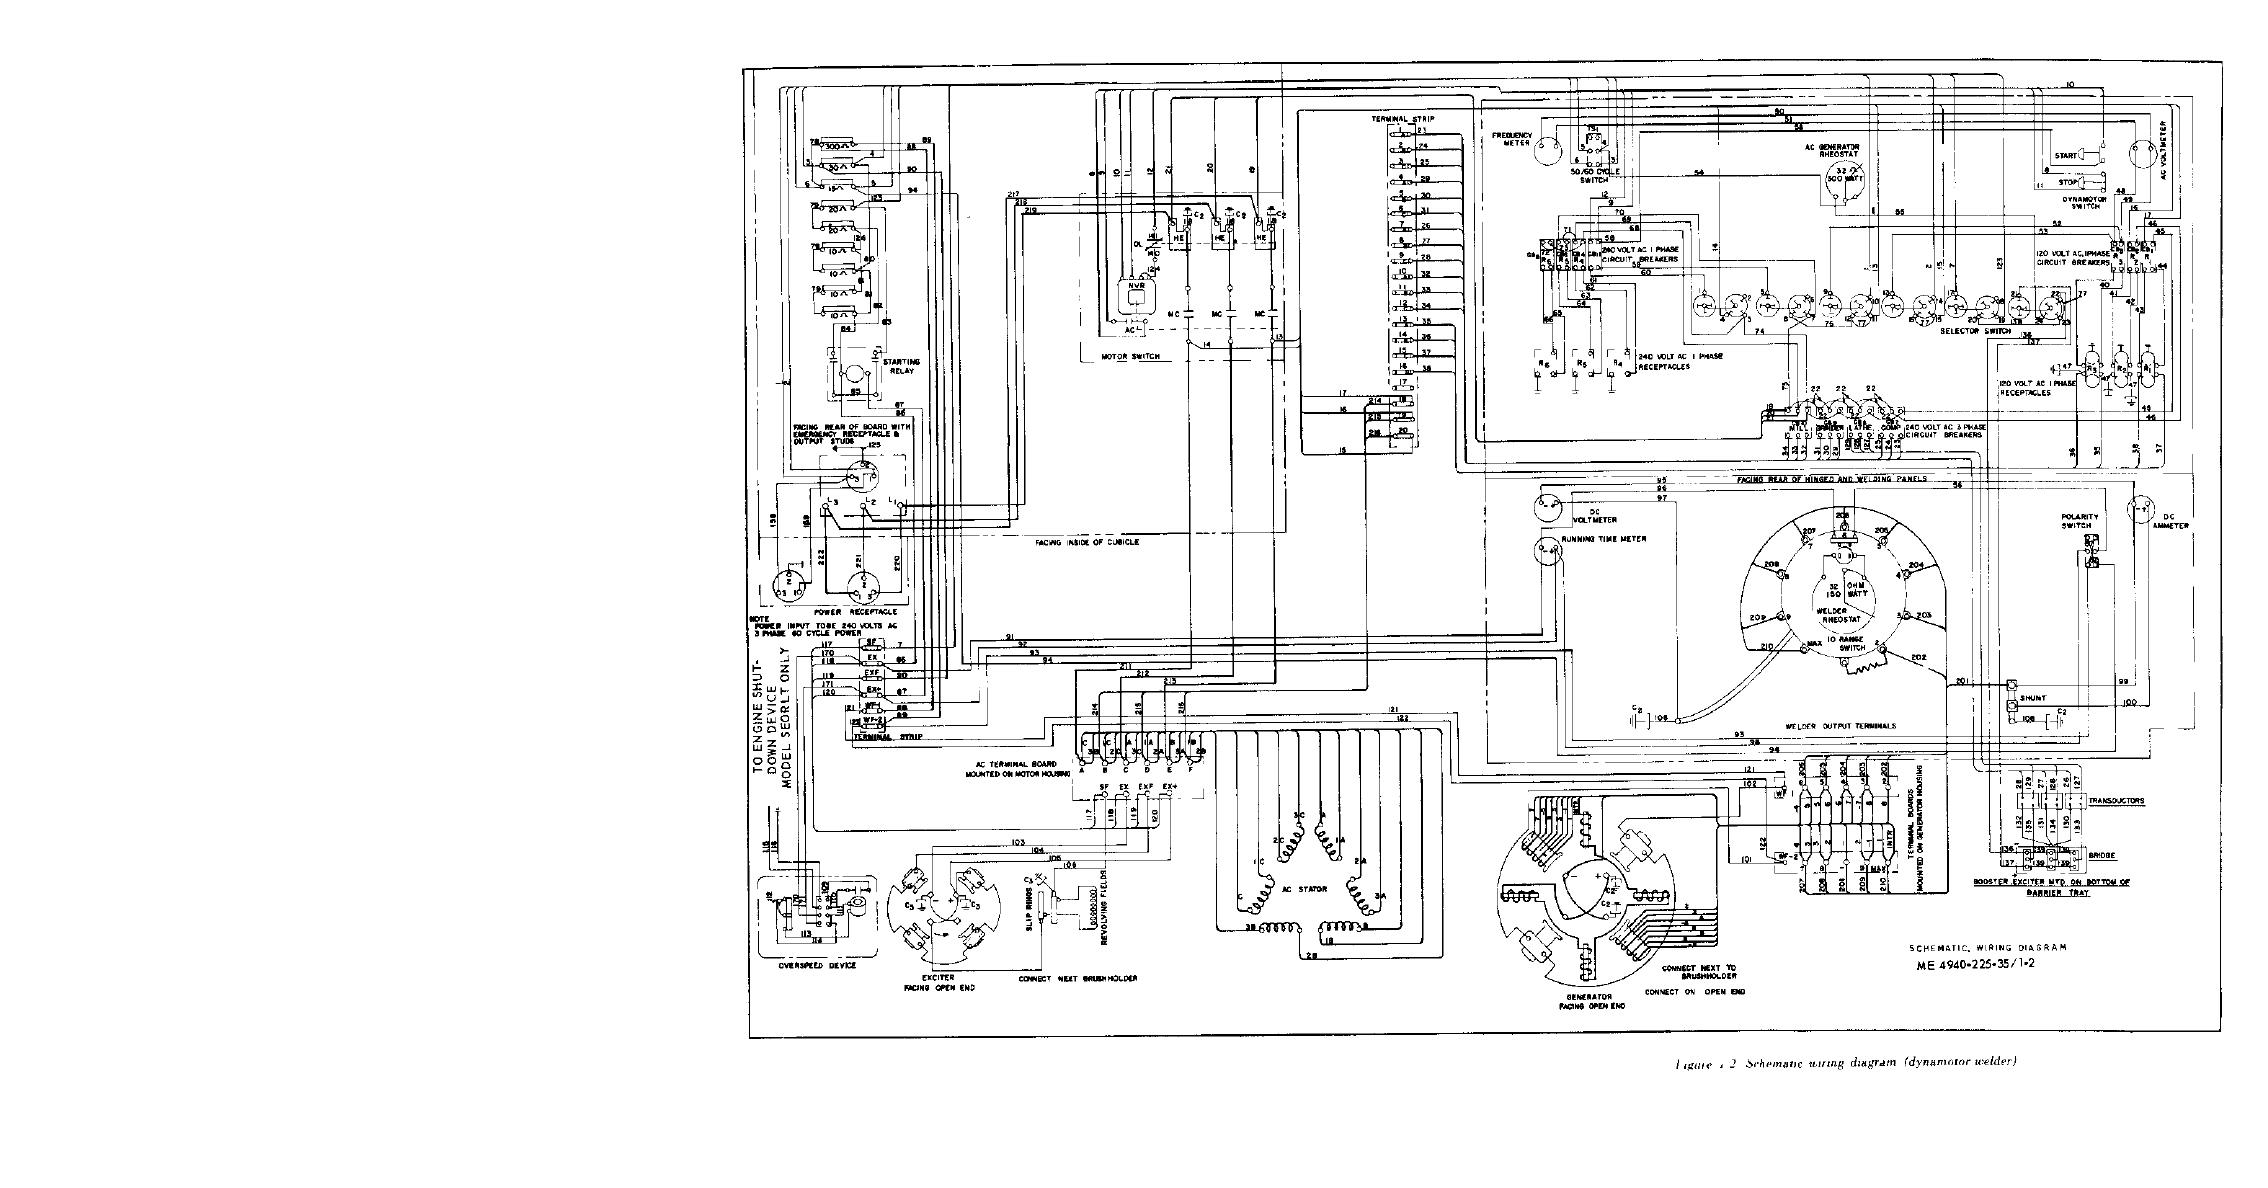 Figure 1-2. Schematic wiring diagram (dynamotor welder)